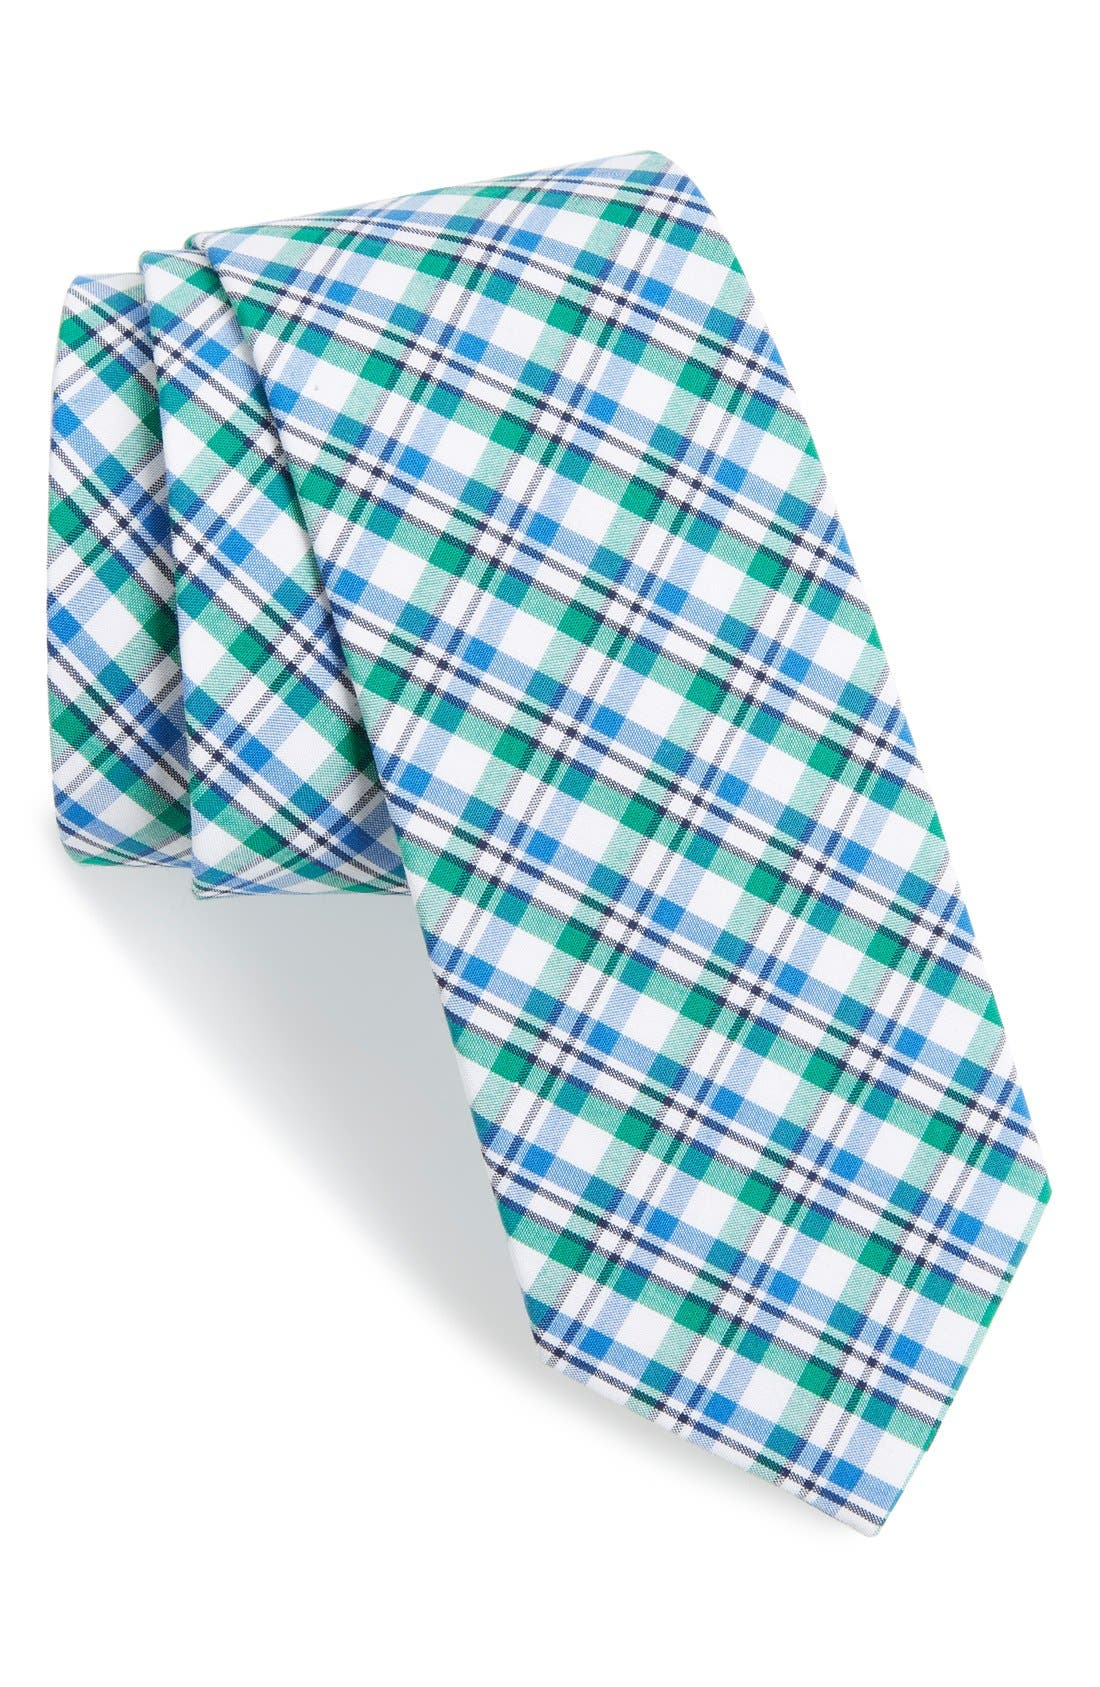 'Boomer' Plaid Cotton Tie,                             Main thumbnail 1, color,